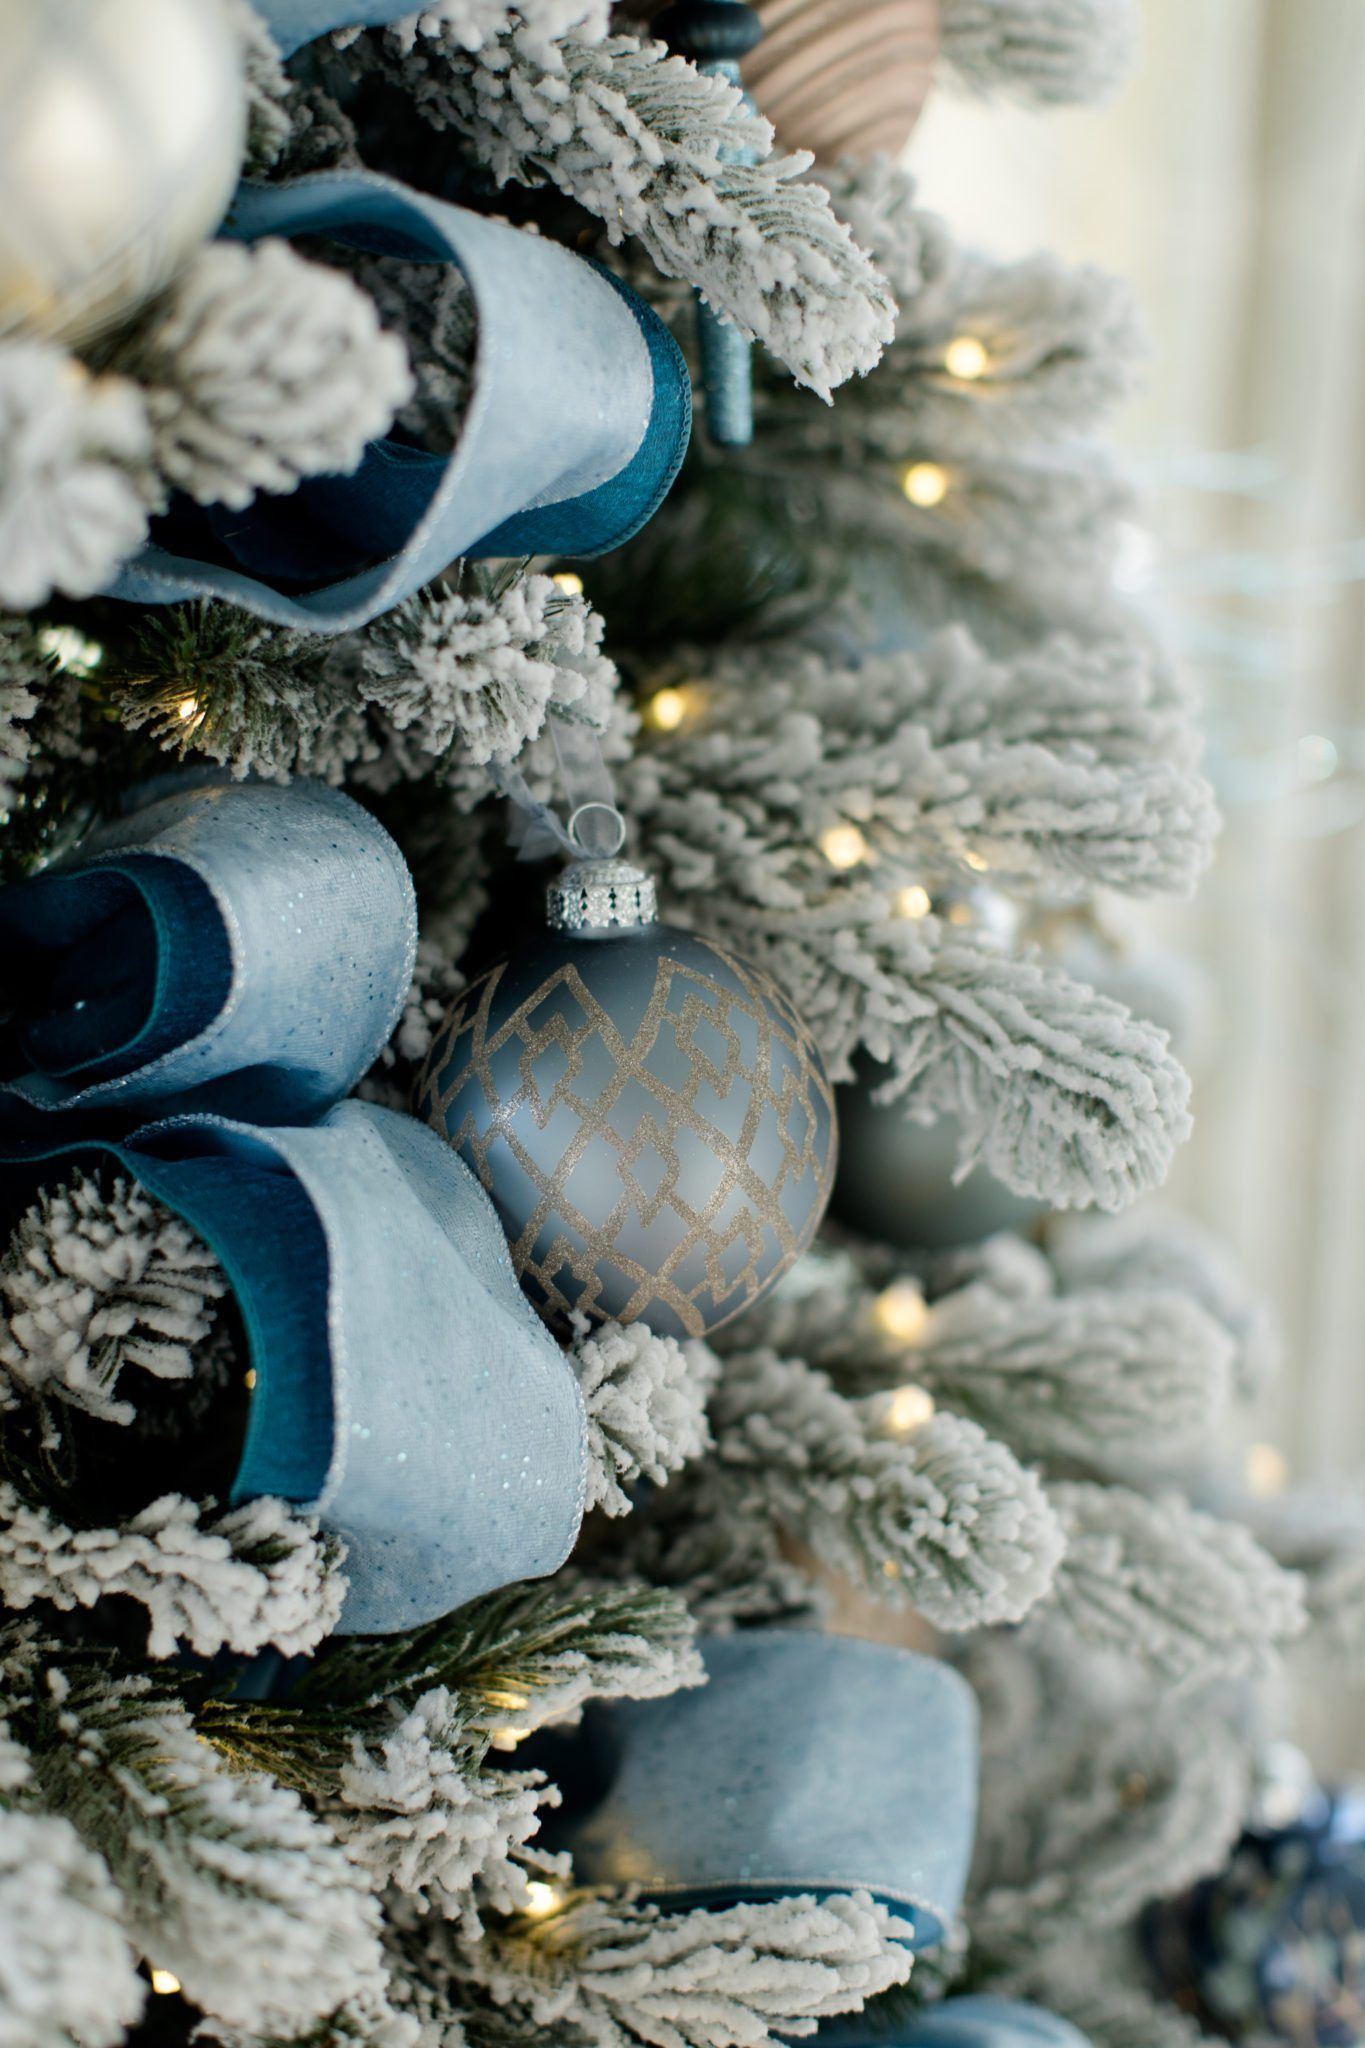 Blue Christmas Decorating Ideas A Tour Of Our Home Blue Christmas Tree Decorations Blue Christmas Tree Ribbon On Christmas Tree